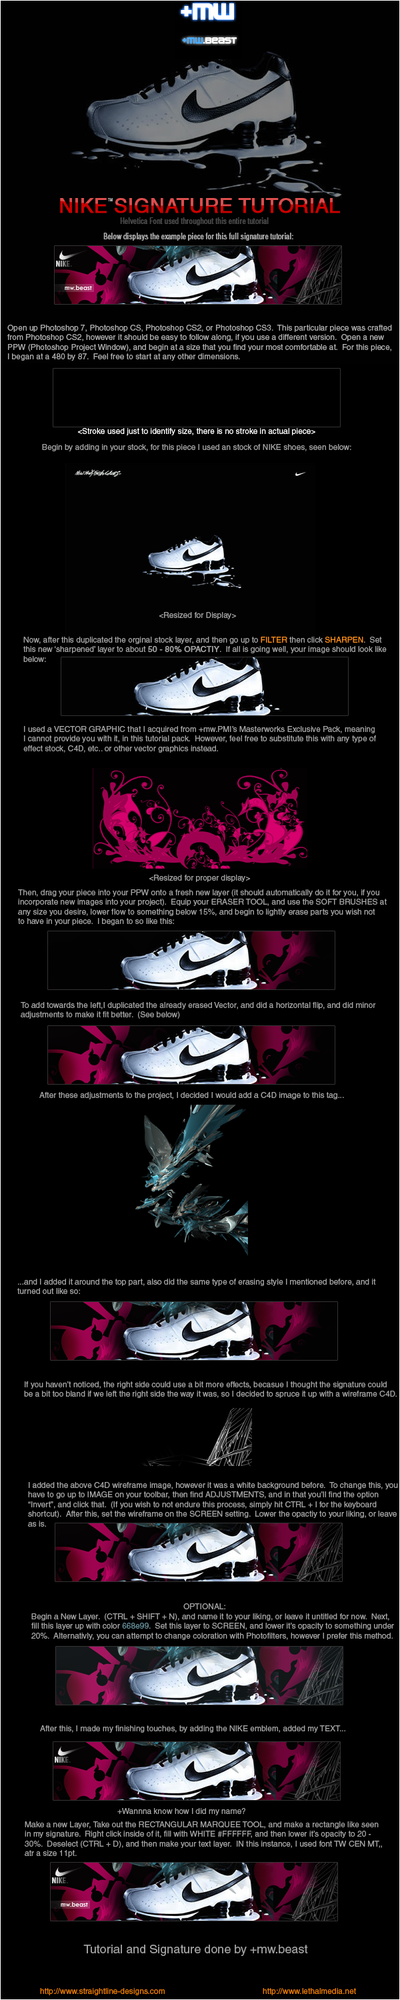 'Nike' Signature Tutorial by LineBeast